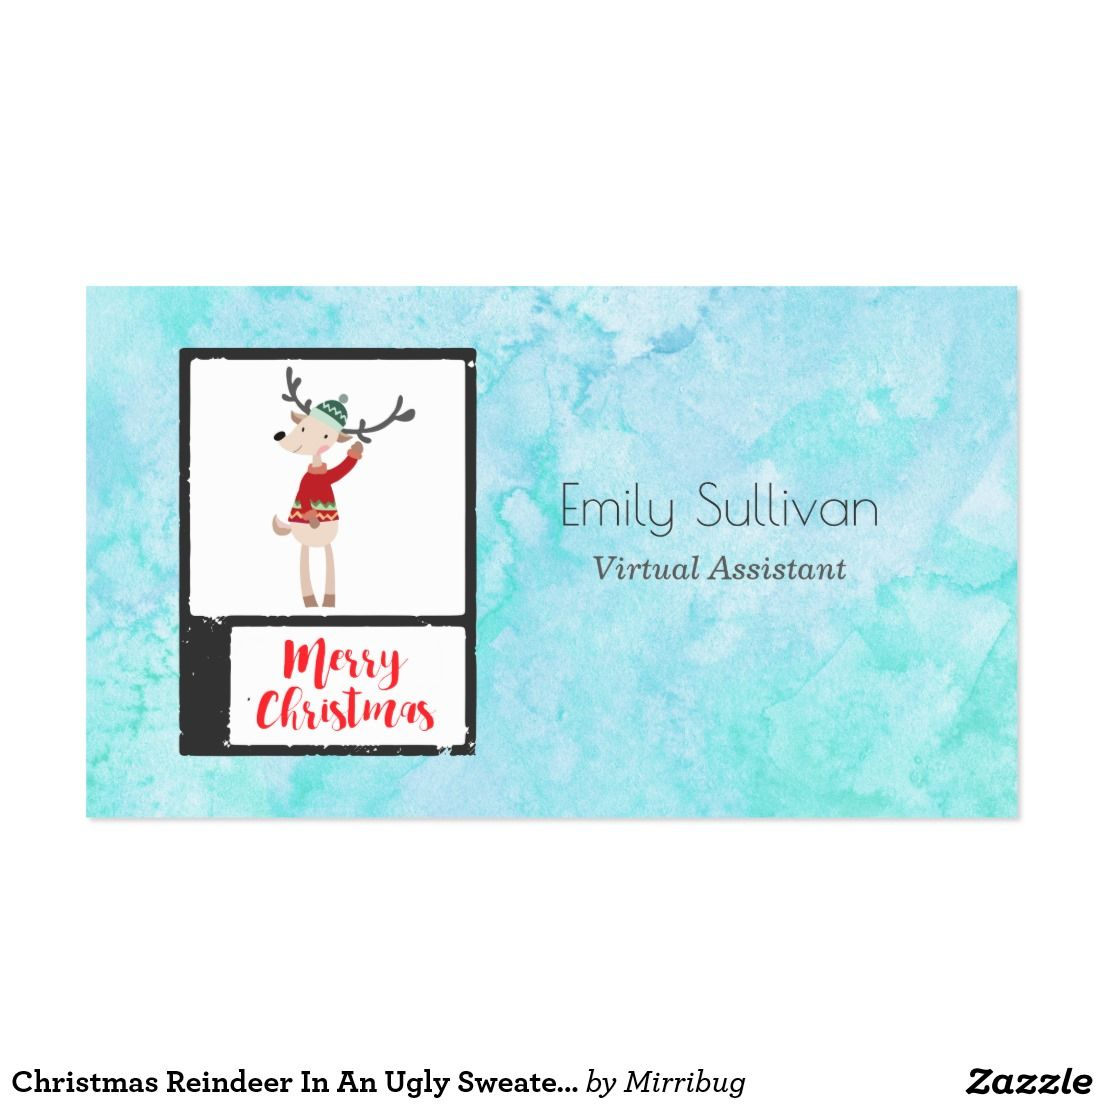 Christmas reindeer in an ugly sweater whimsical business card christmas reindeer in an ugly sweater whimsical business card colourmoves